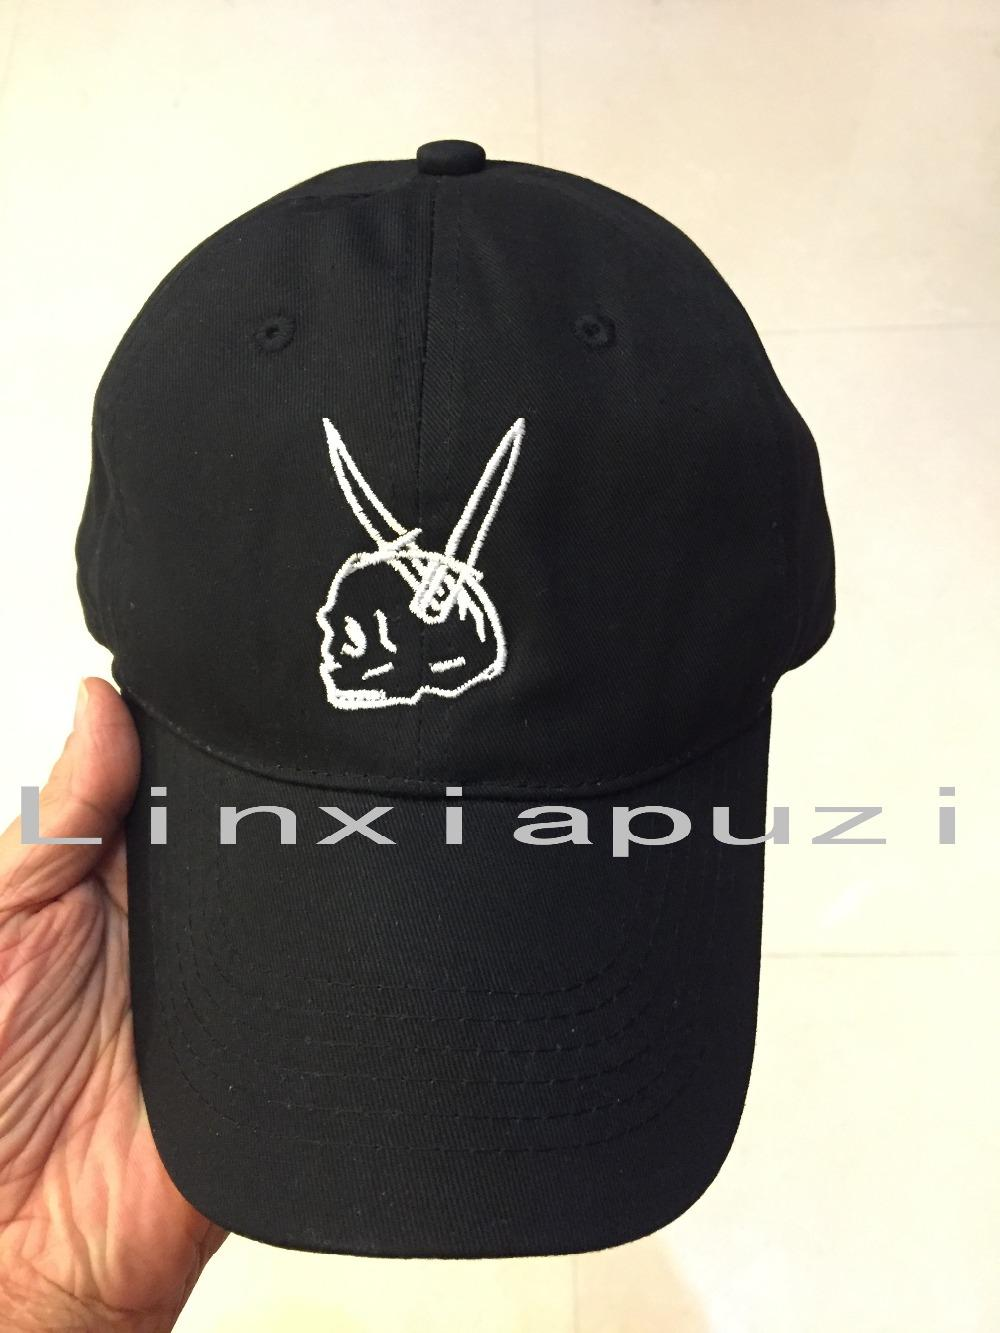 Wholesale 2015 Rare Hats GIANNI MORA HE DIED CAP IAN CONNOR I THINK ABOUT  YOU SOMETIMES GOSHA Pigalle Pompon Pain Snapback Hat UK 2019 From Godefery 2d19d92303b